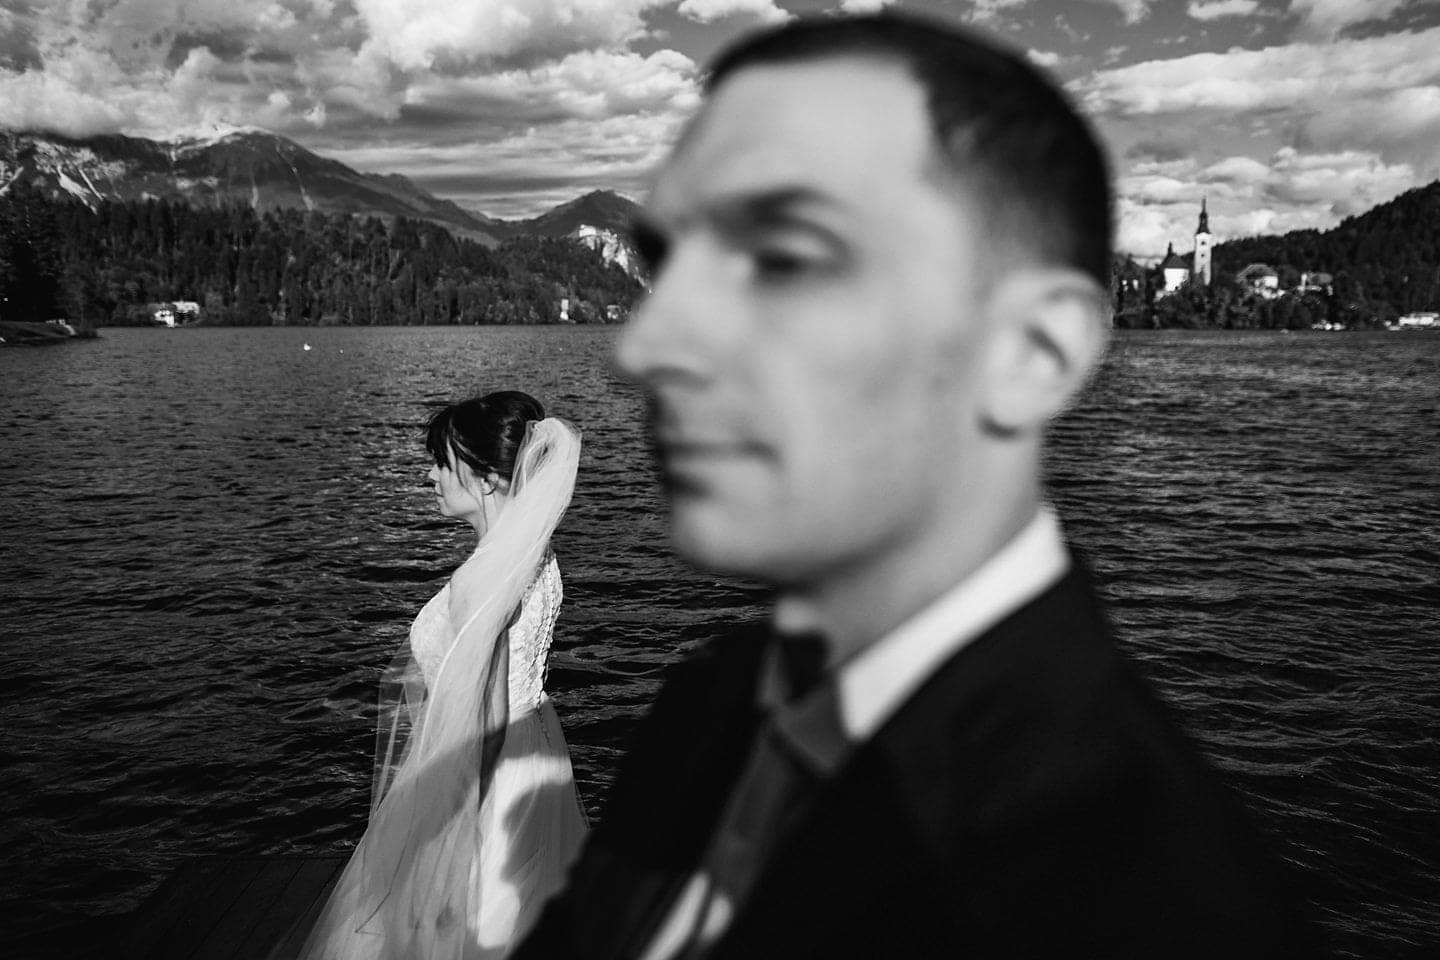 Best of wedding photography collection 2017 - by Aleks & Irena Kus 67